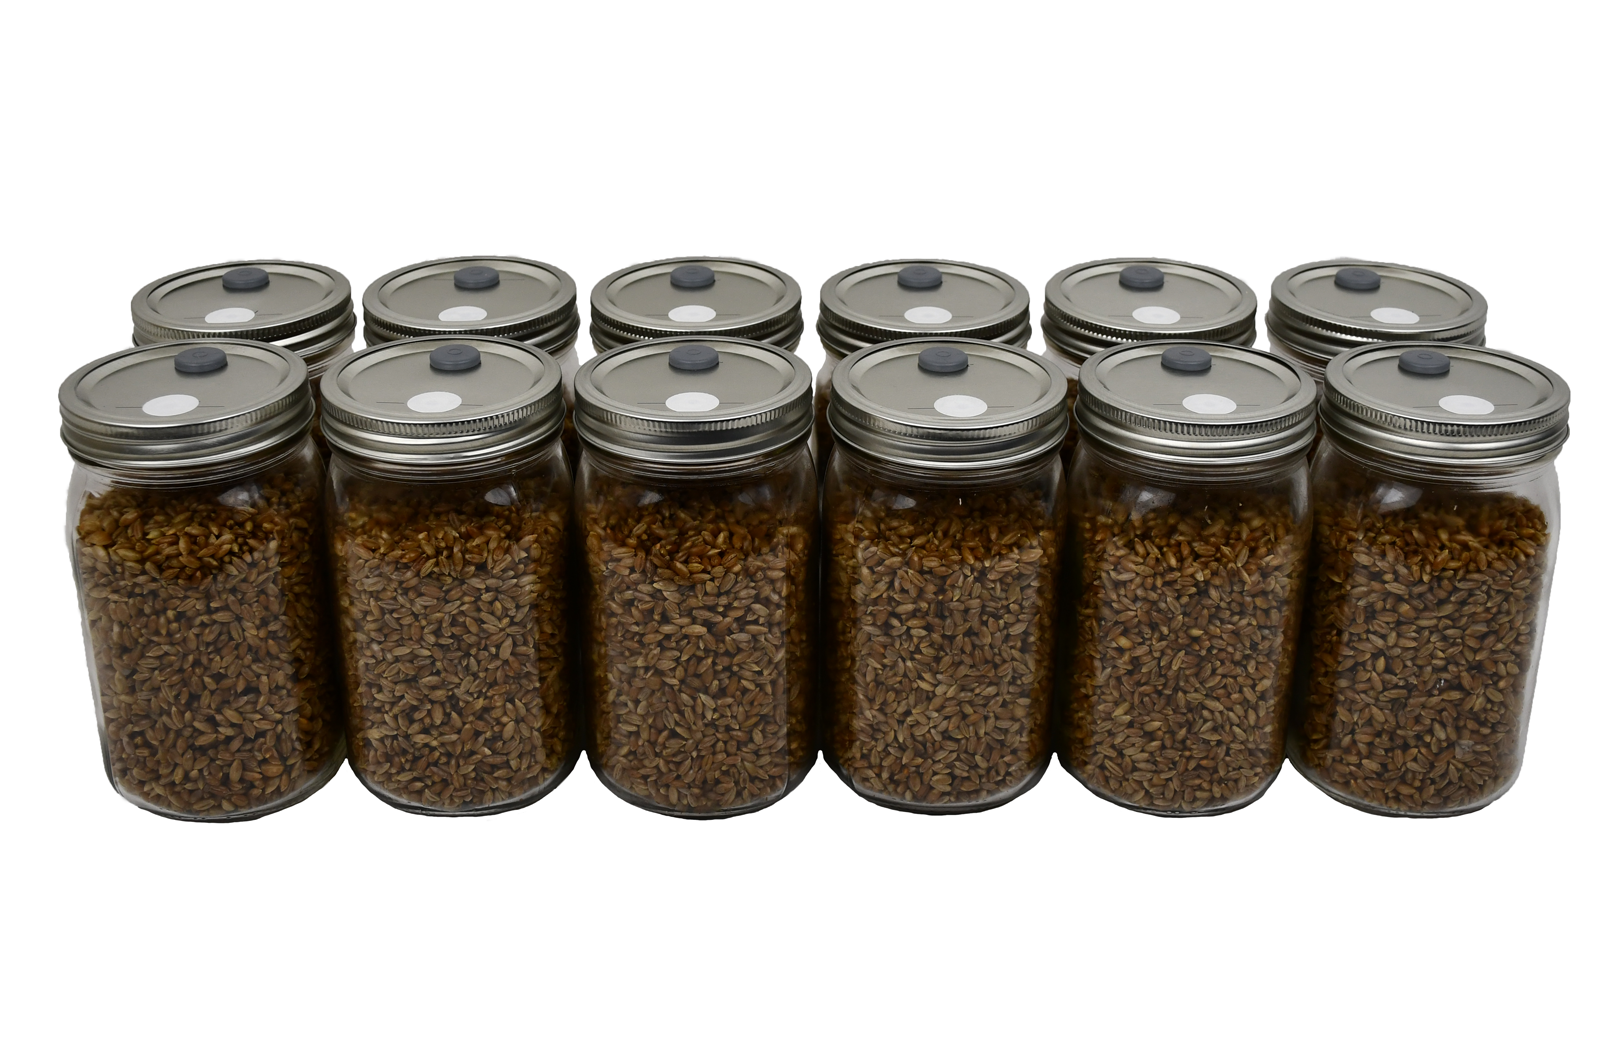 12 Quart Jars of Sterilized Rye Berries Mushroom Spawn